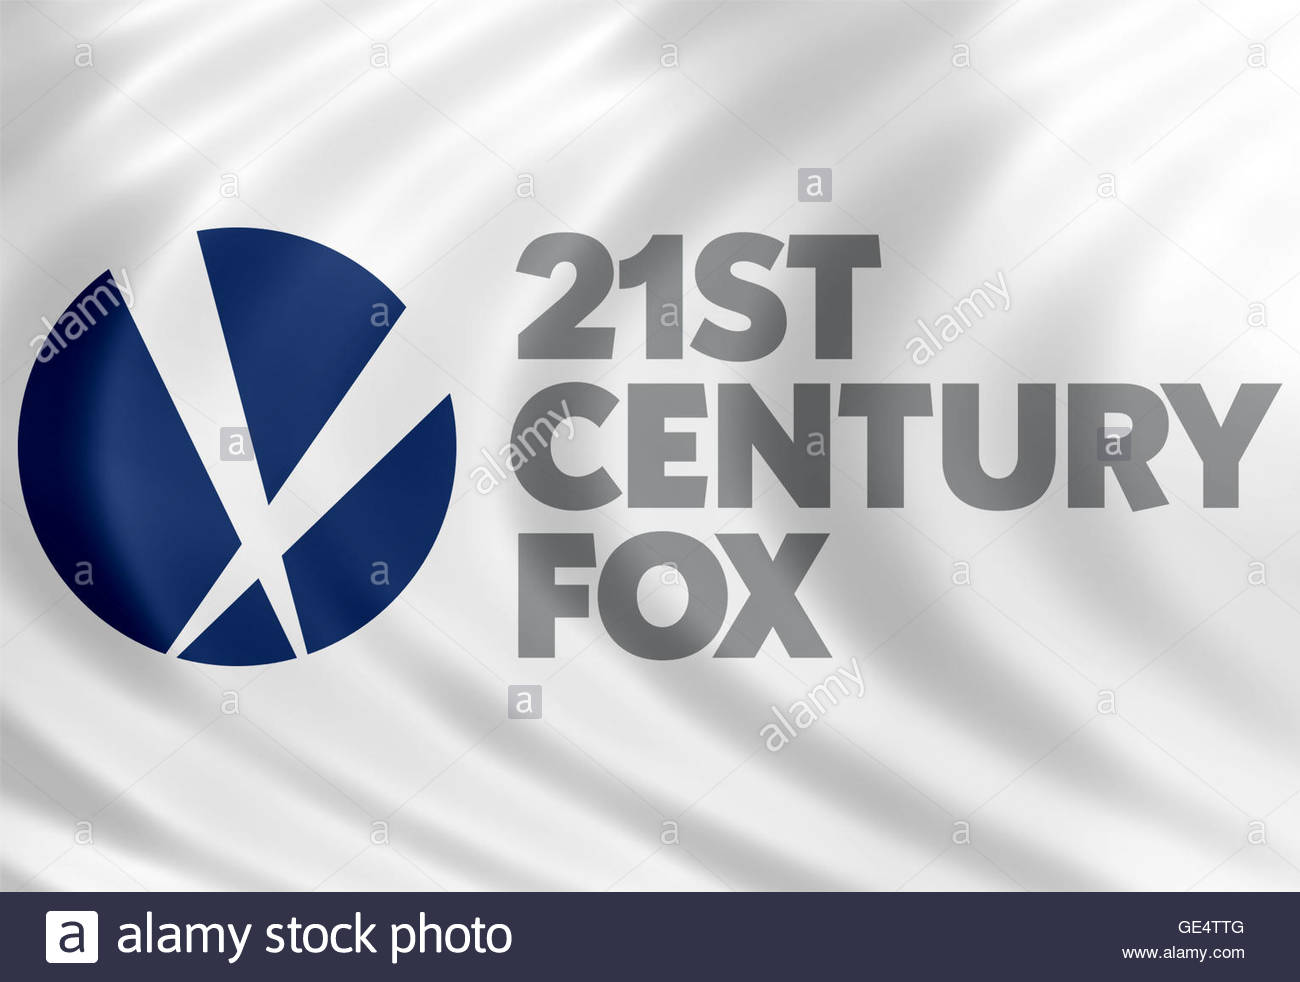 21st Century Fox icon logo - Stock Image